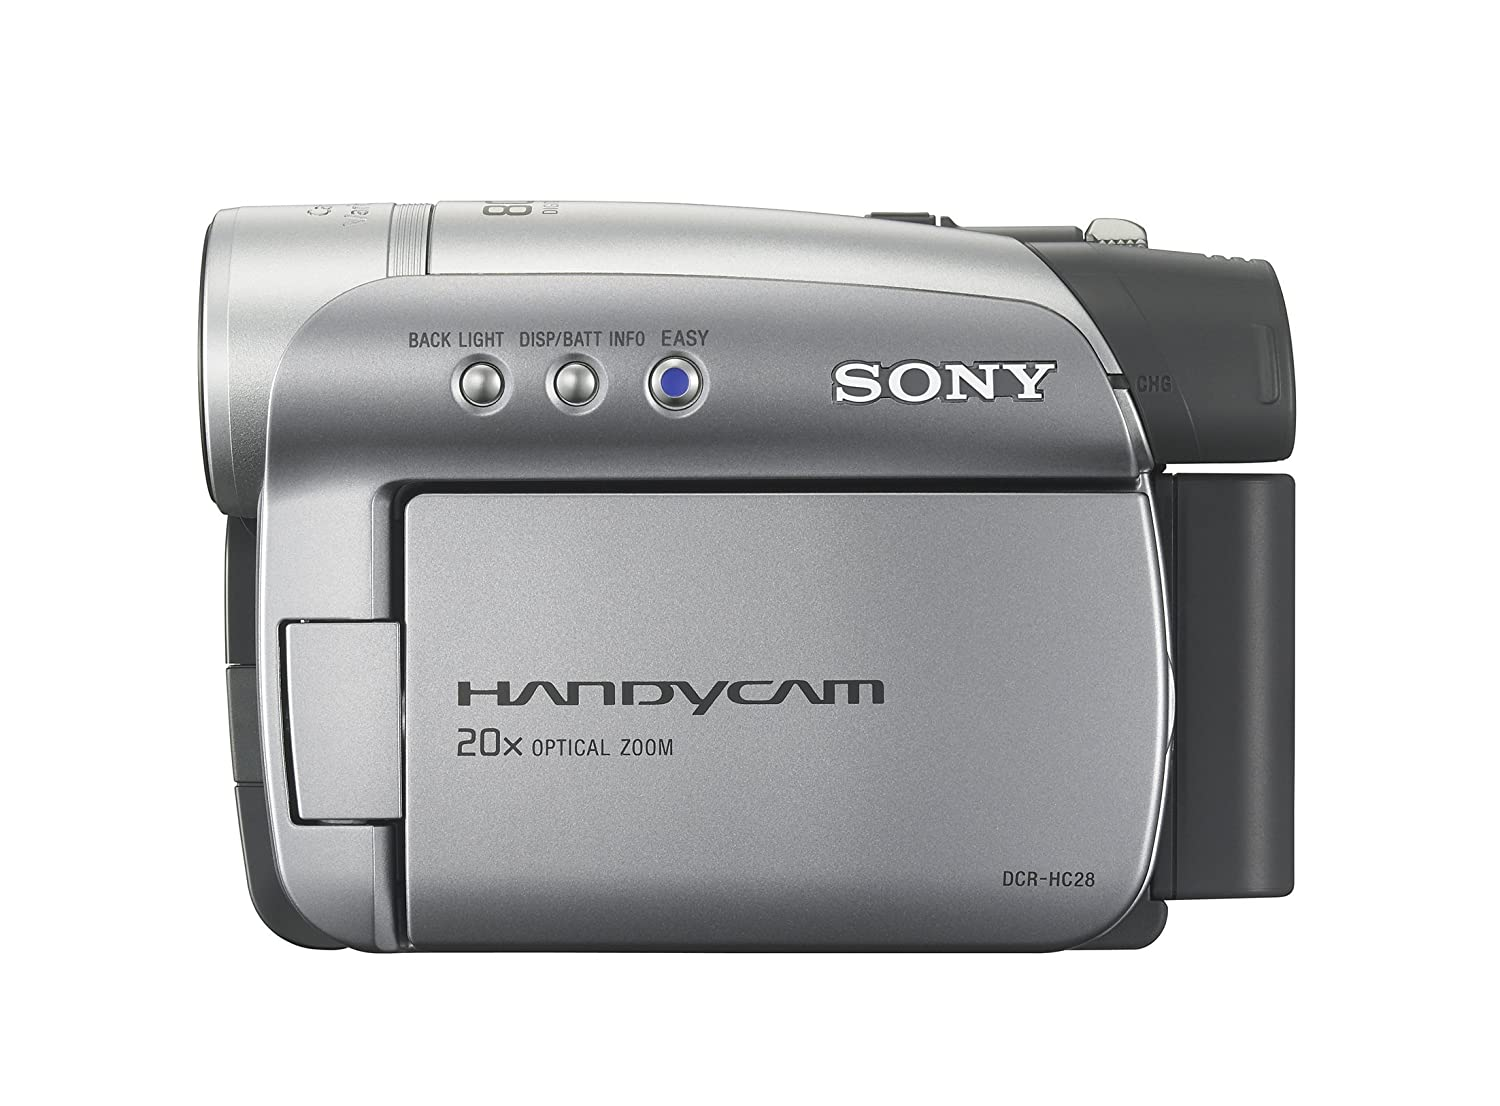 SONY DCR-HC28 DRIVER FOR WINDOWS 8